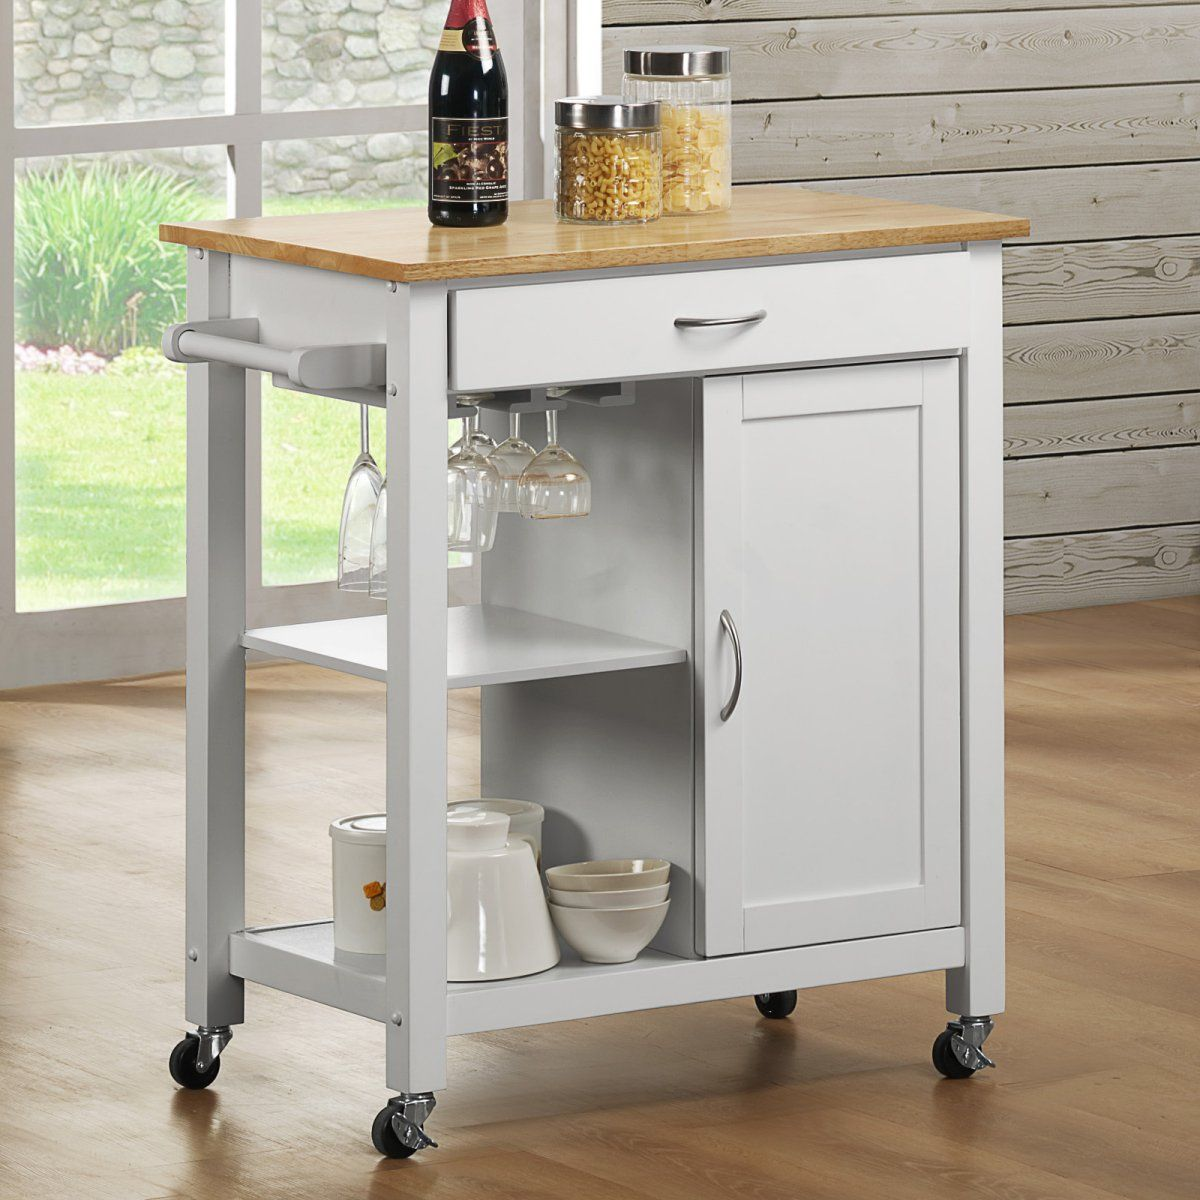 Another kitchen cart | Cool House stuff | Pinterest